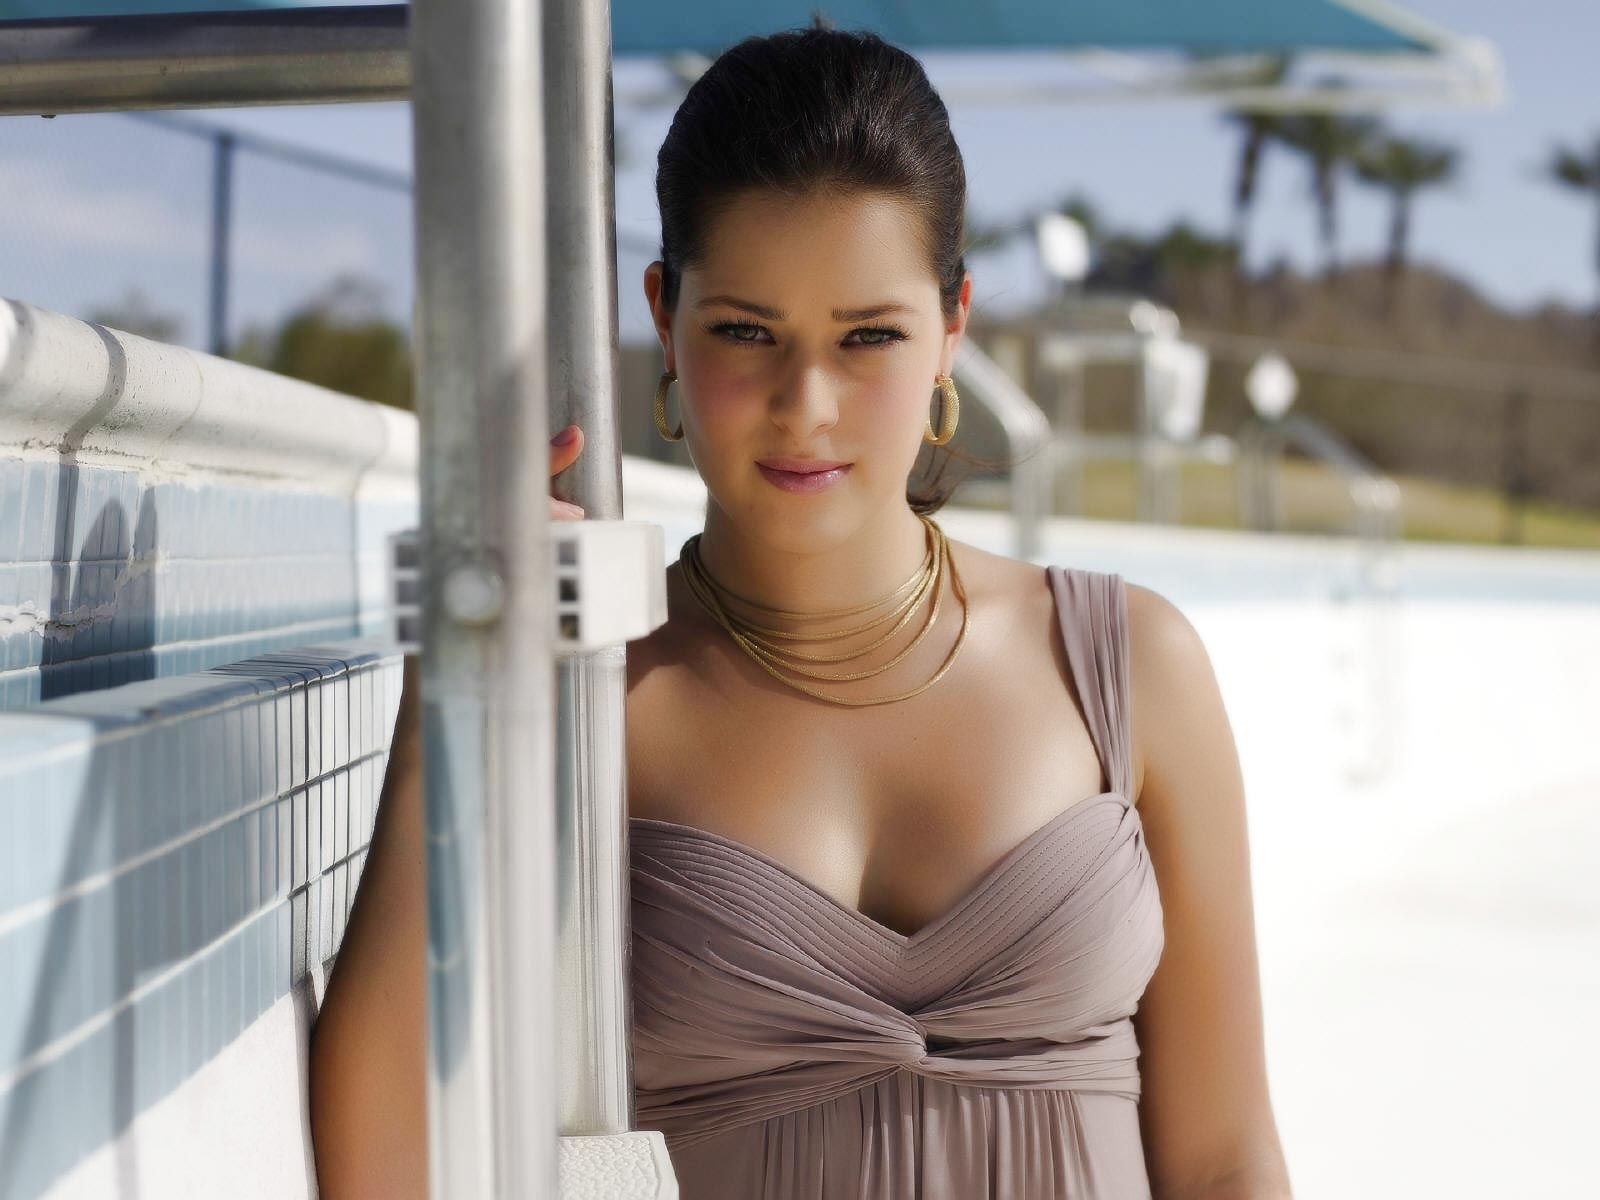 Ana Ivanovic Nude Pics page 7 - the best pictures of ana ivanovic